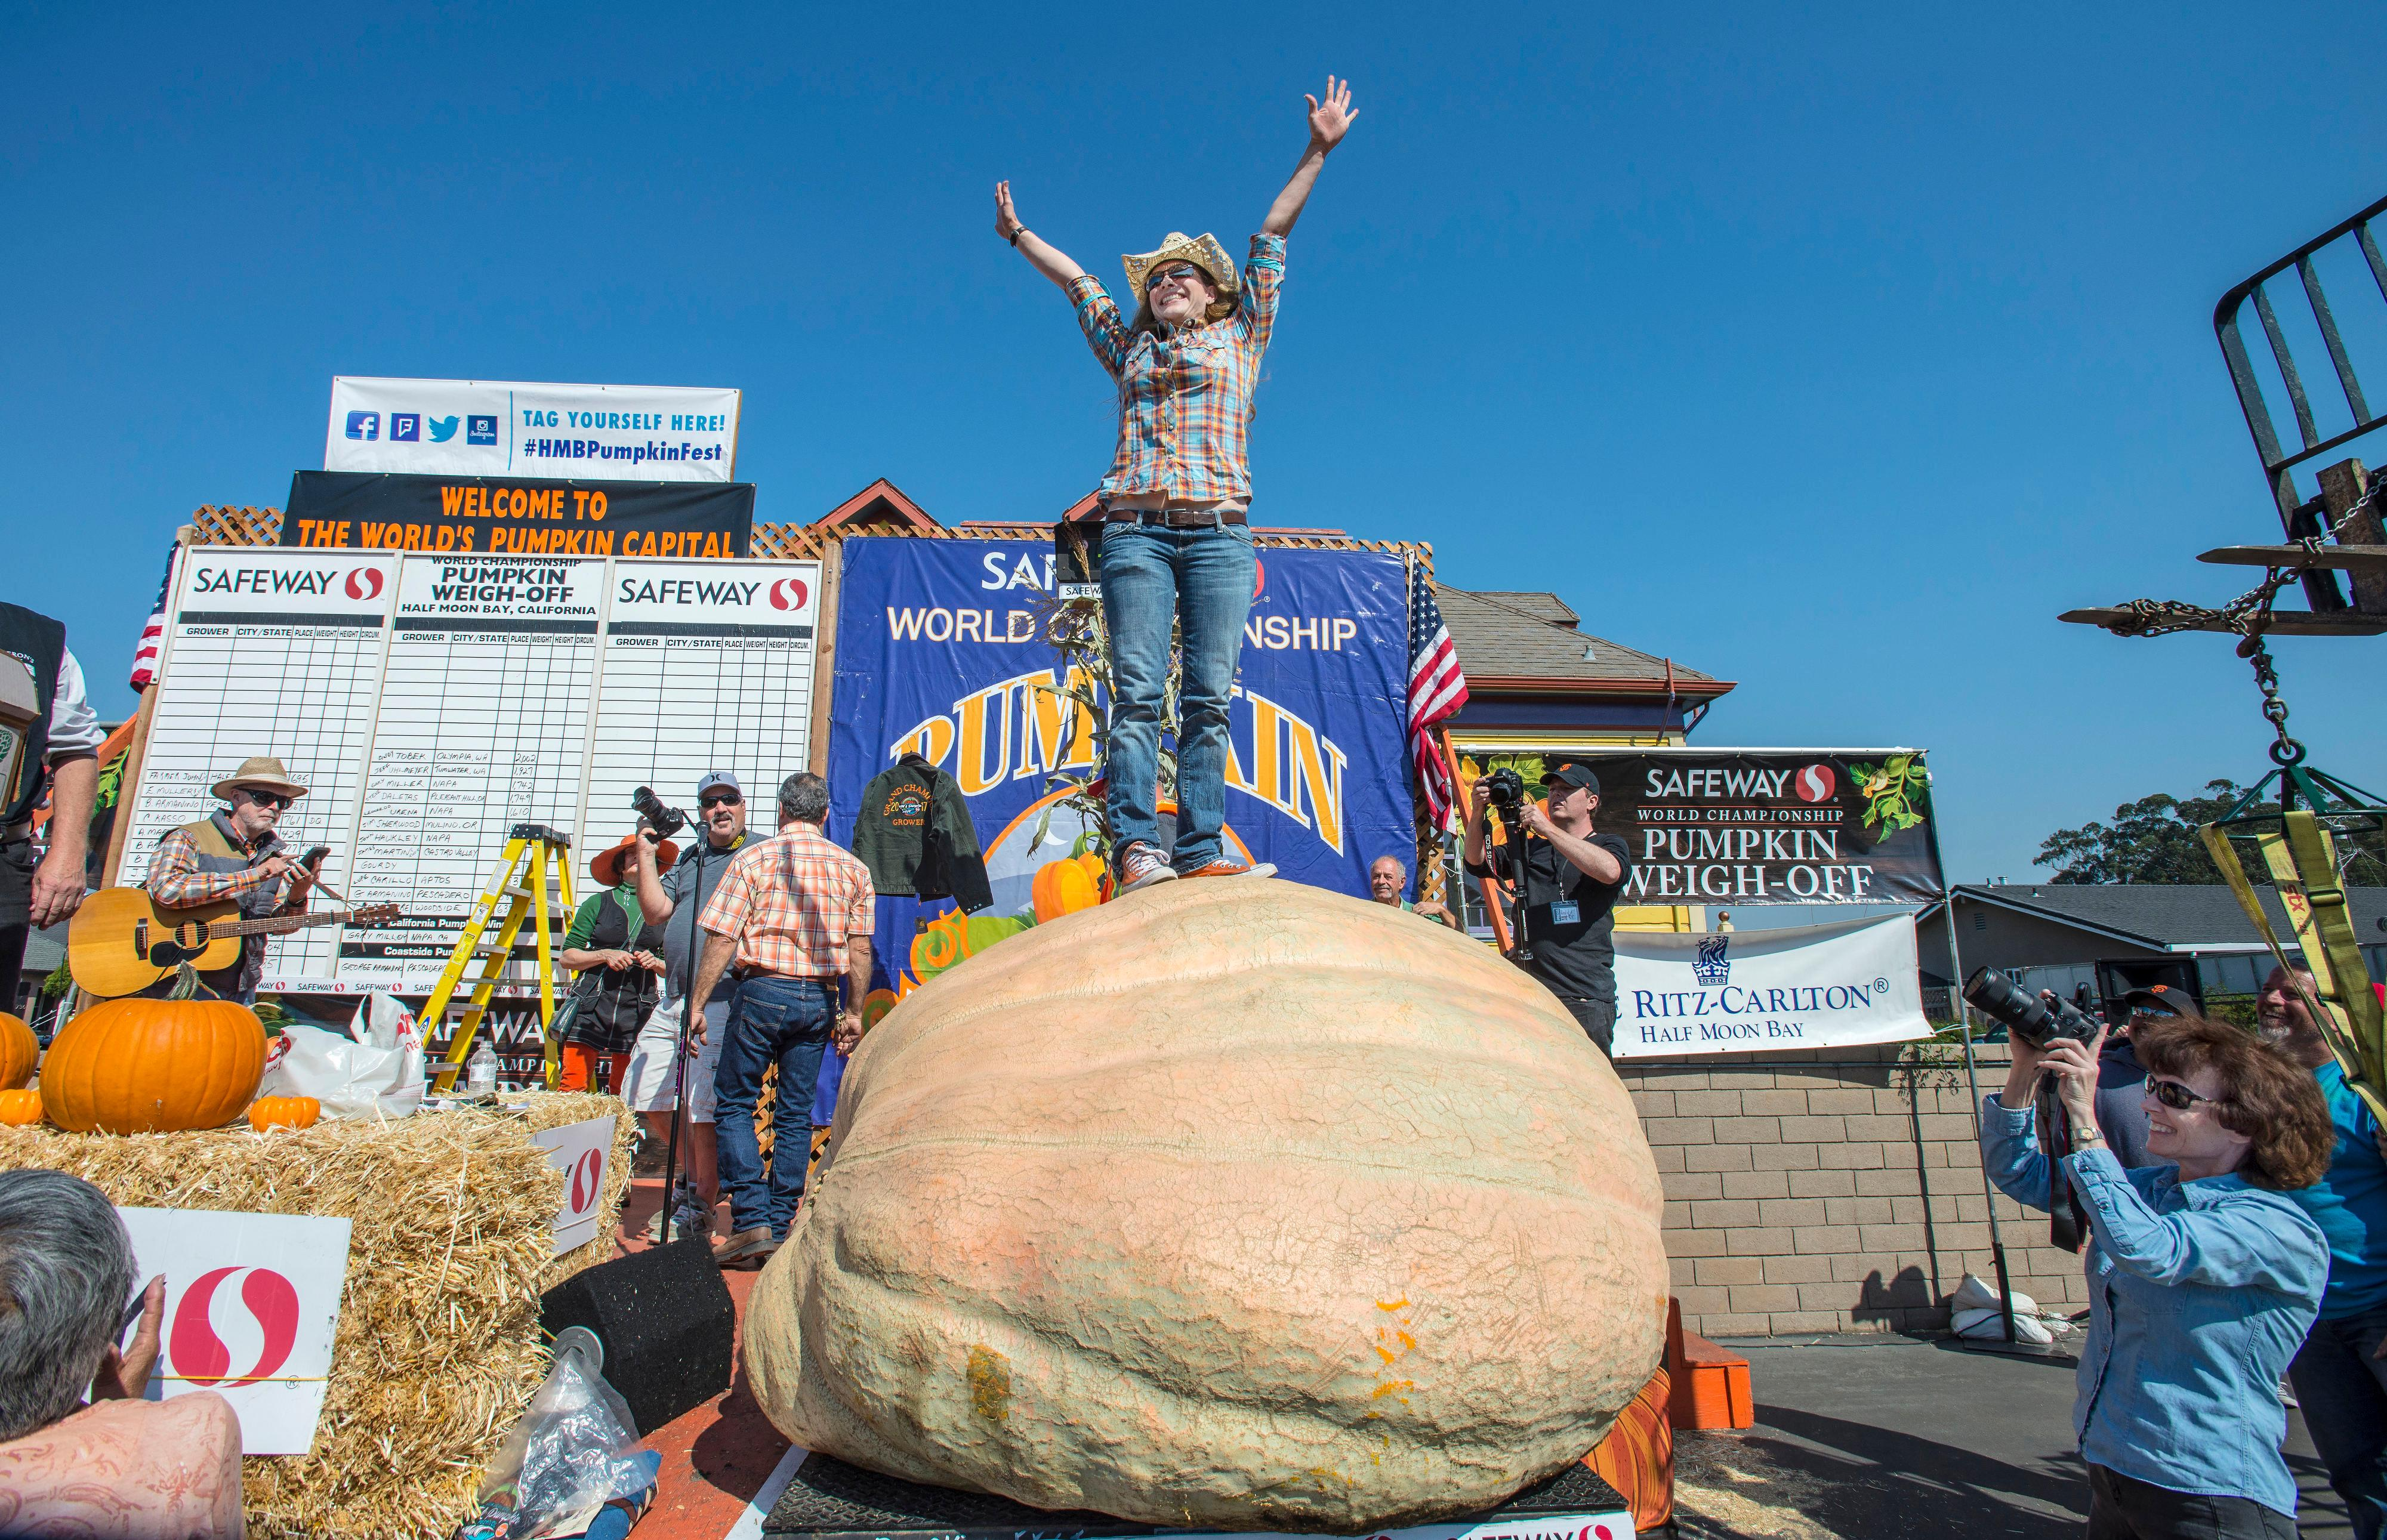 Cindy Tobek of Olympia, Wash., throws her arms into the air as she stands on her 2002 pound pumpkin at the 44th World Championship Pumpkin Weigh-Off in Half Moon Bay, Calif.,  on Monday, Oct.  9, 2017. Tobek finished in second place behind Joel Holland of Sumner, Wash. Holland's pumpkin weighed in at 2363 pounds.   (Mark Rightmire/The Orange County Register via AP)